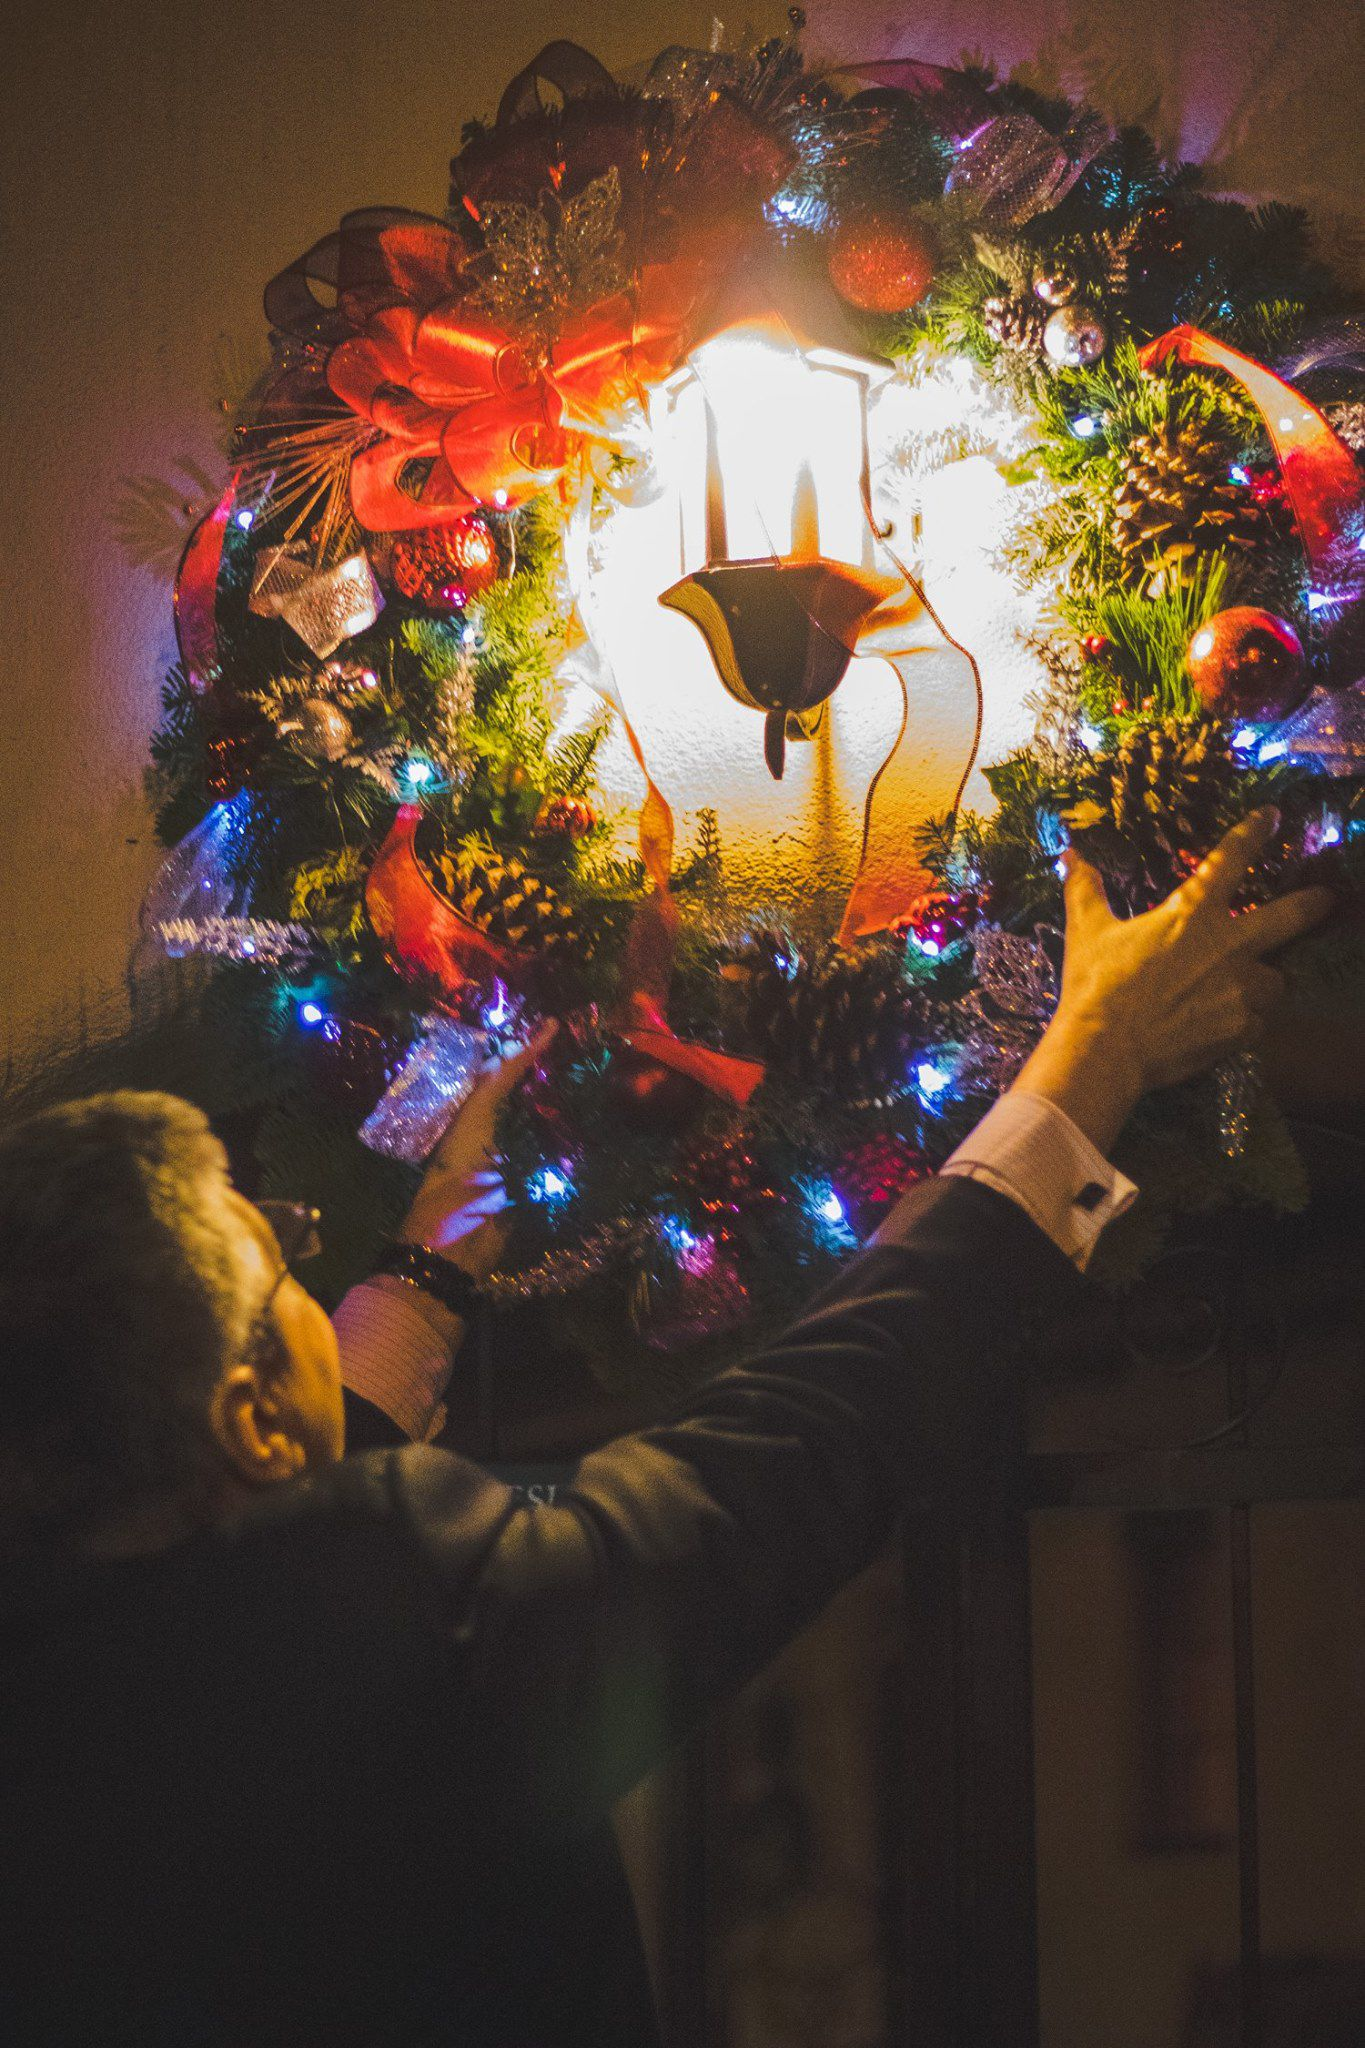 Things to Do for Christmas in Albuquerque